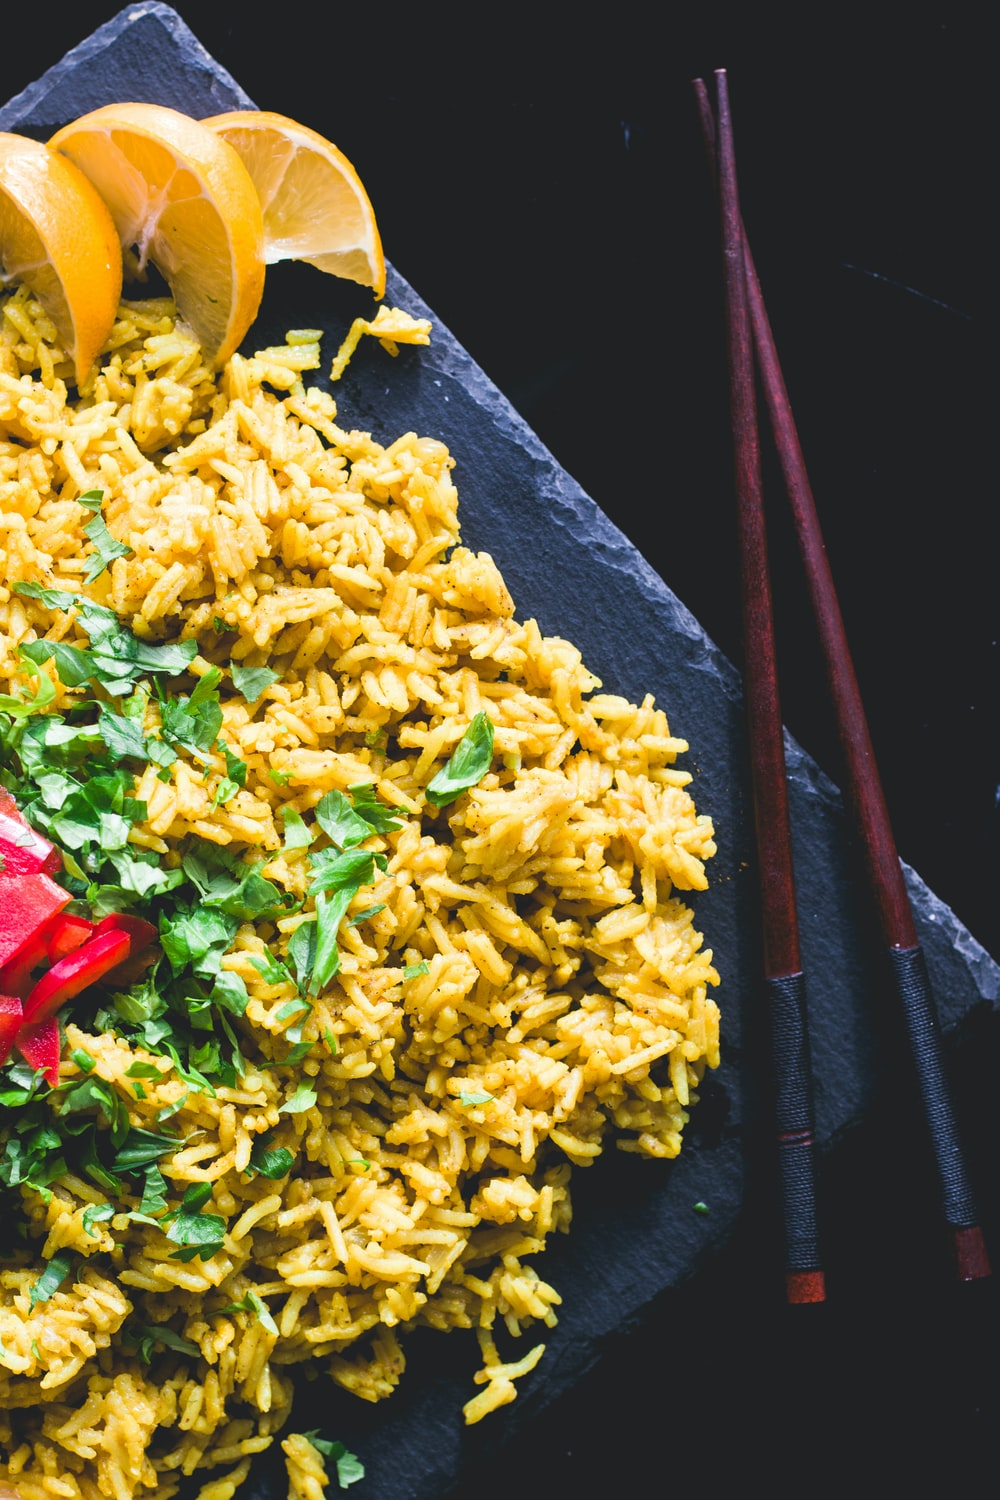 yellow rice with red rose petals